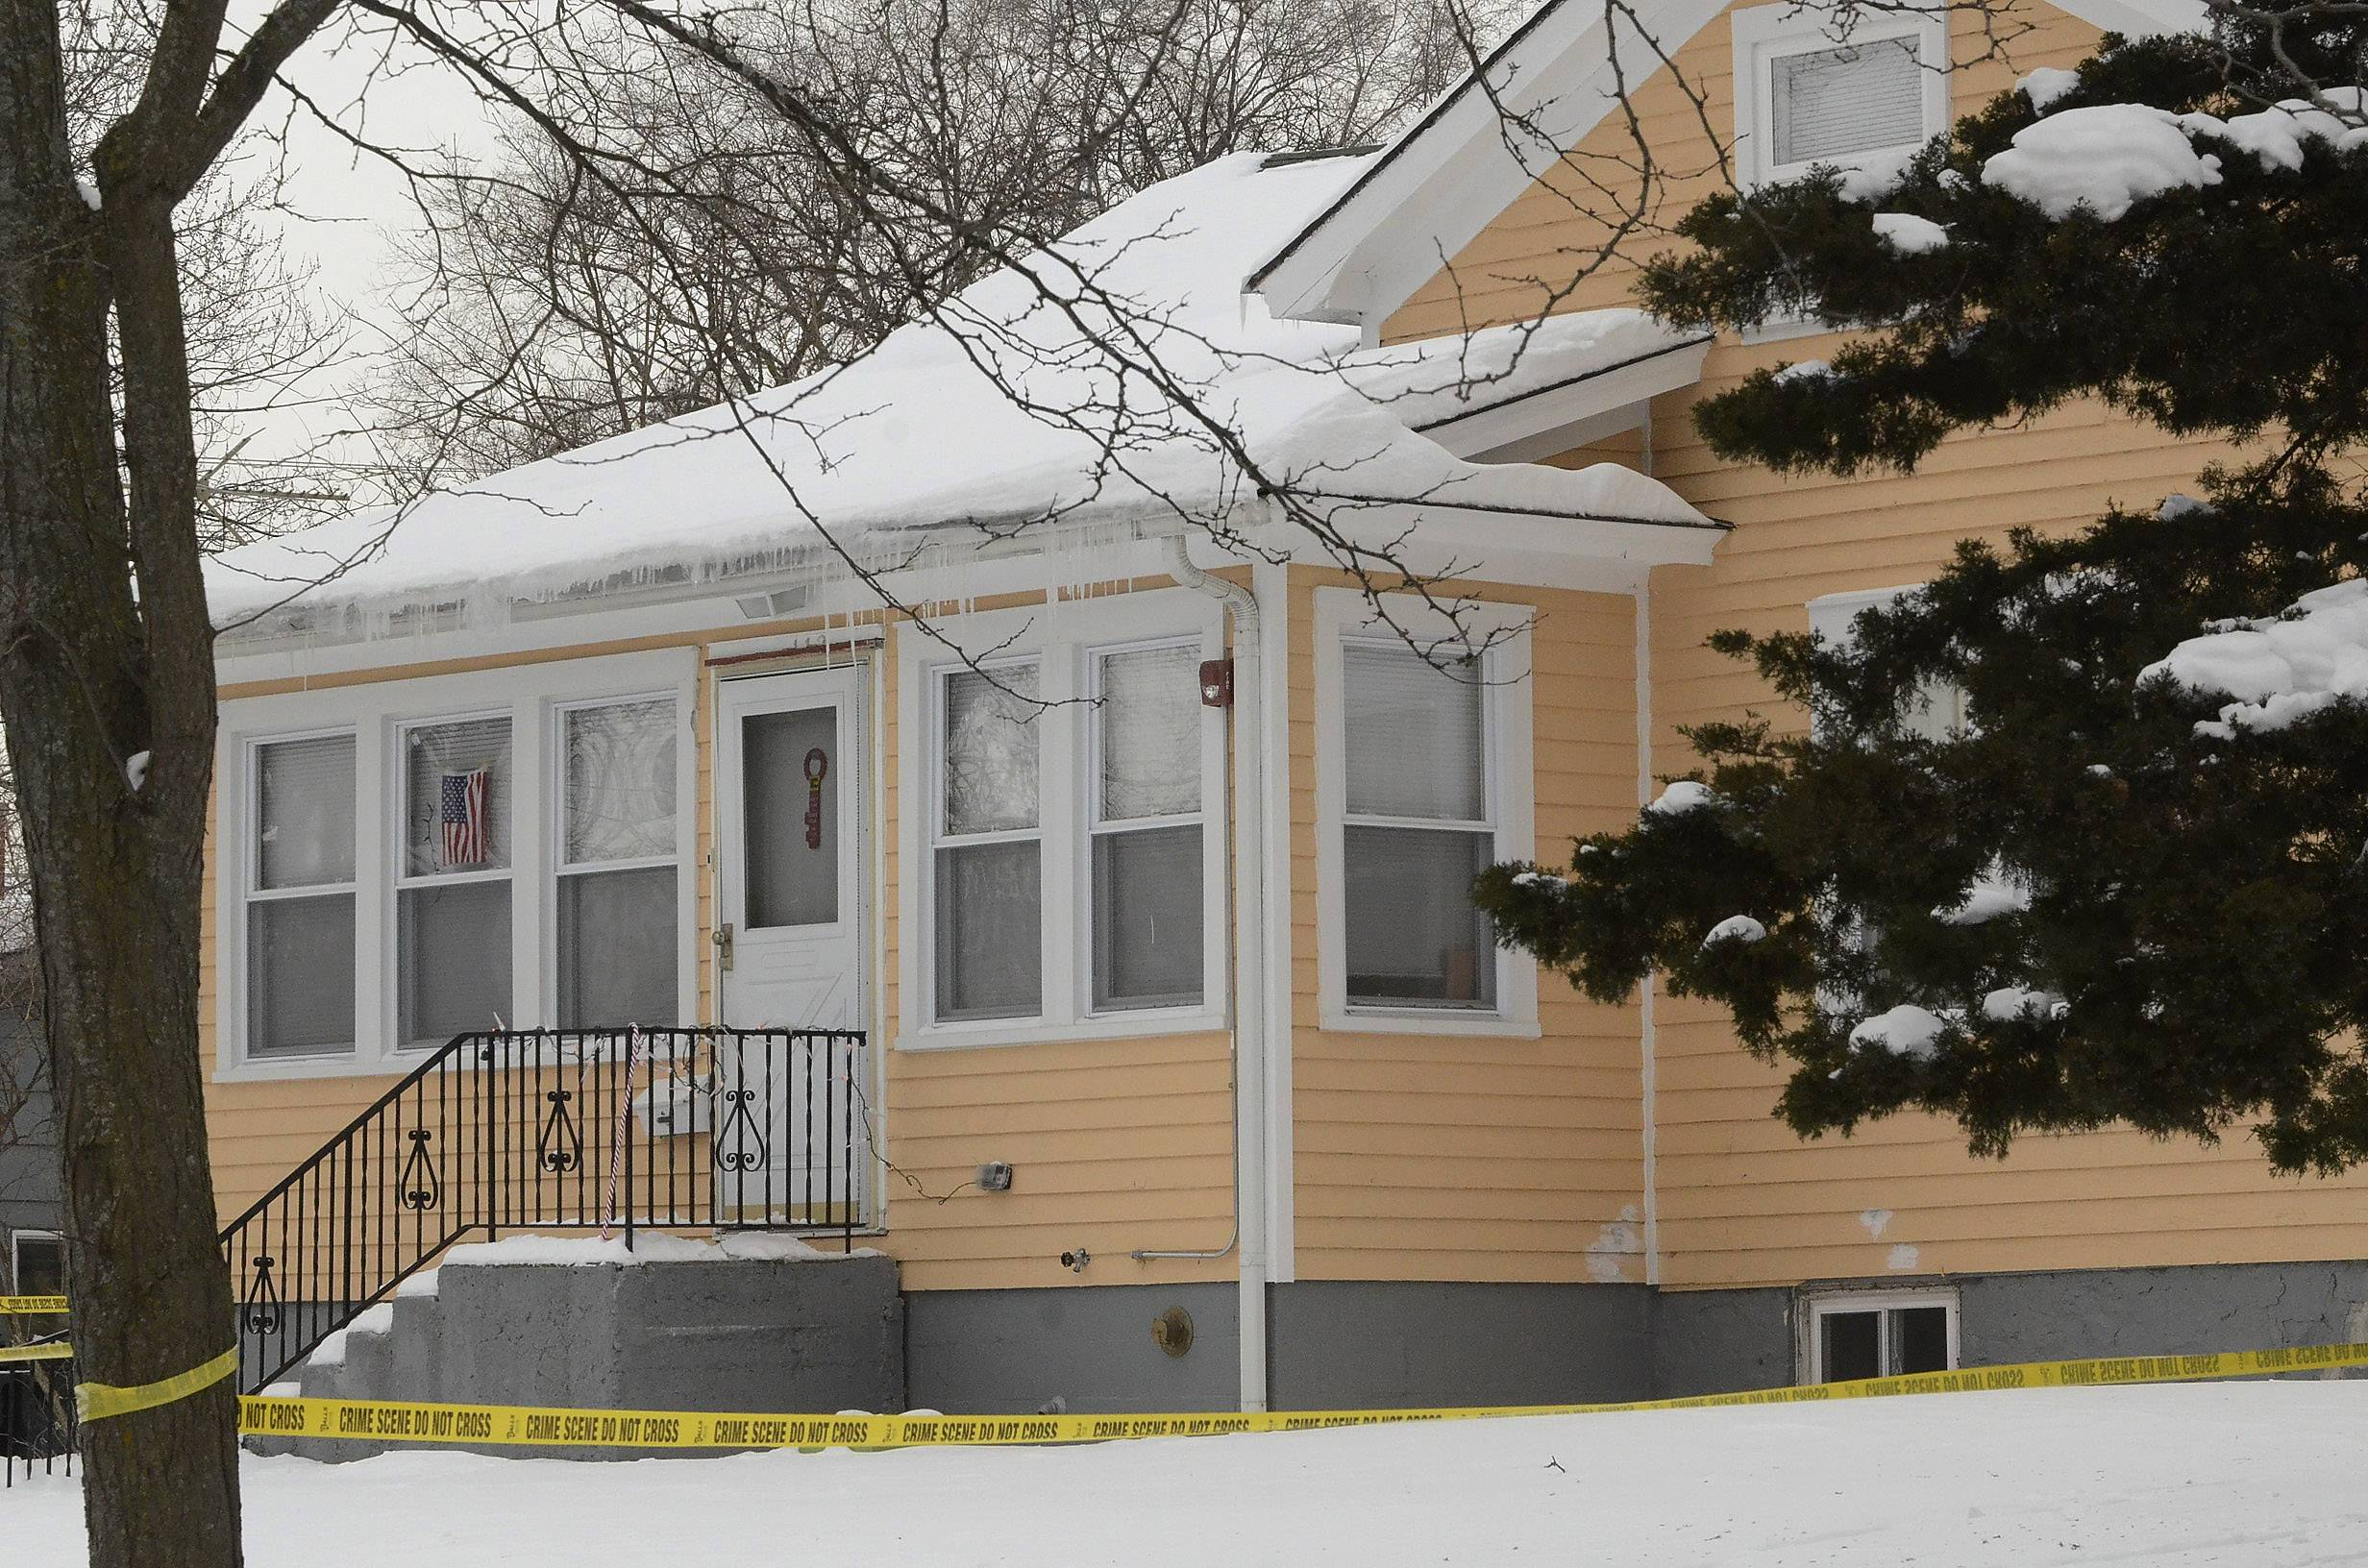 House on the 100 block of S. Hager Avenue in Barrington where a 7-month-old Barrington girl was starved to death in January, authorities say.